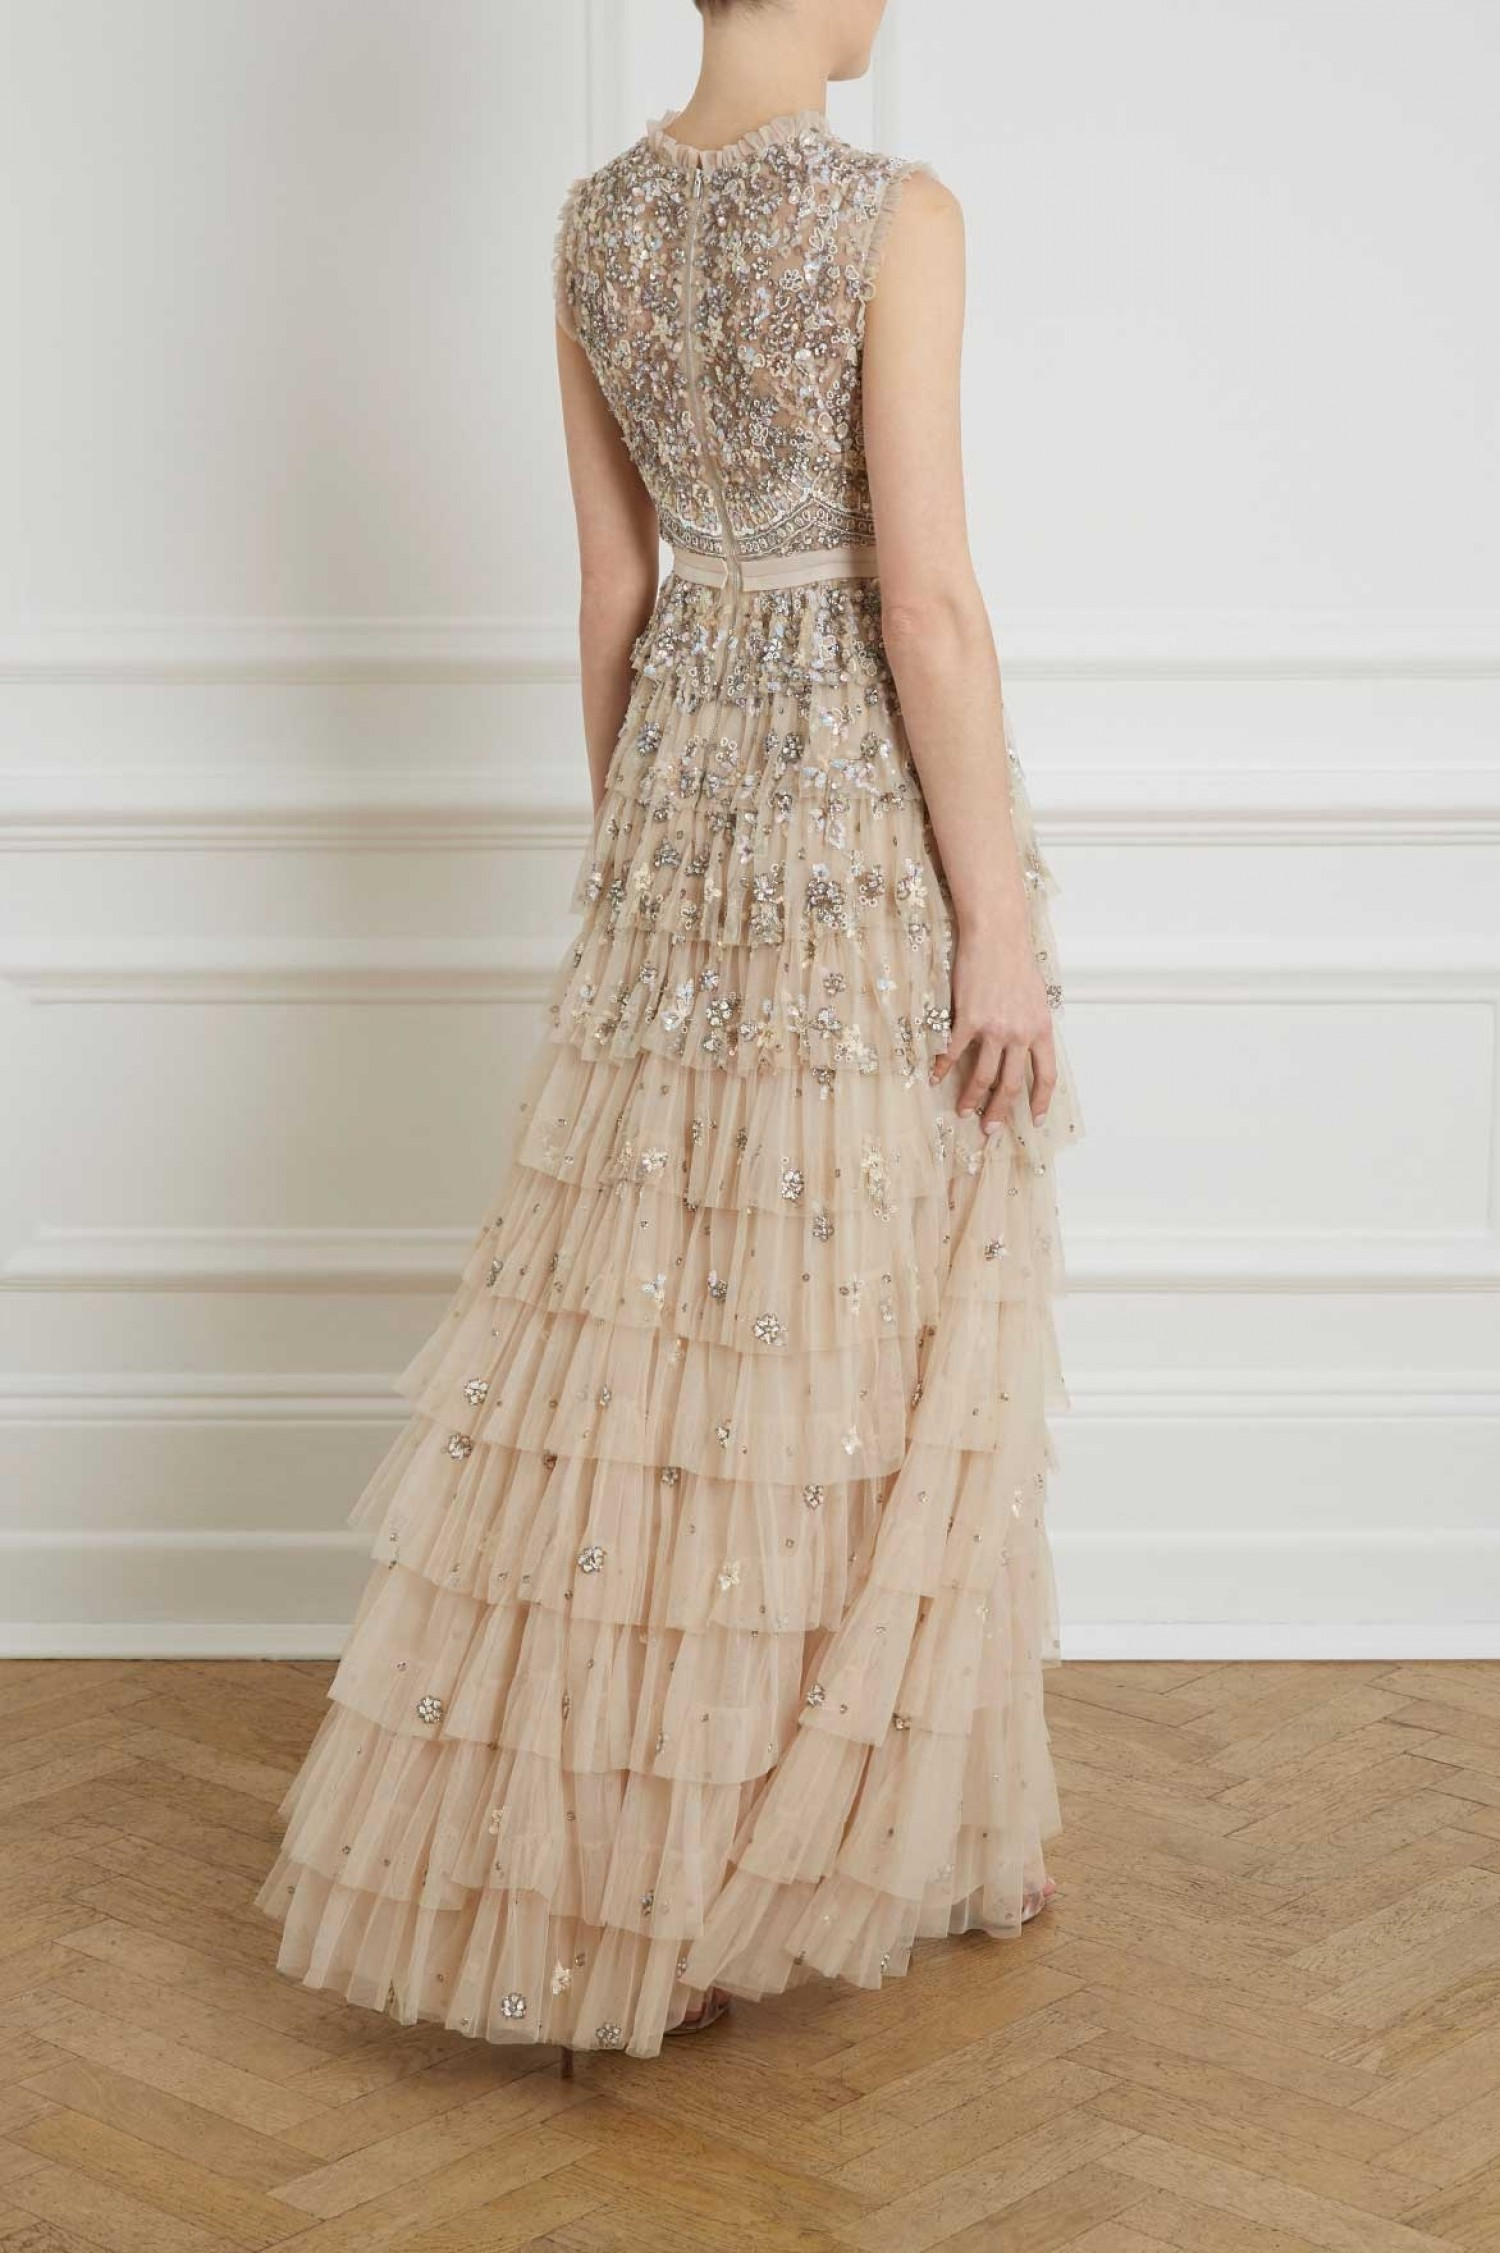 pearlescent_gown_-_champagne_-_needle_thread_-_4_1.jpg